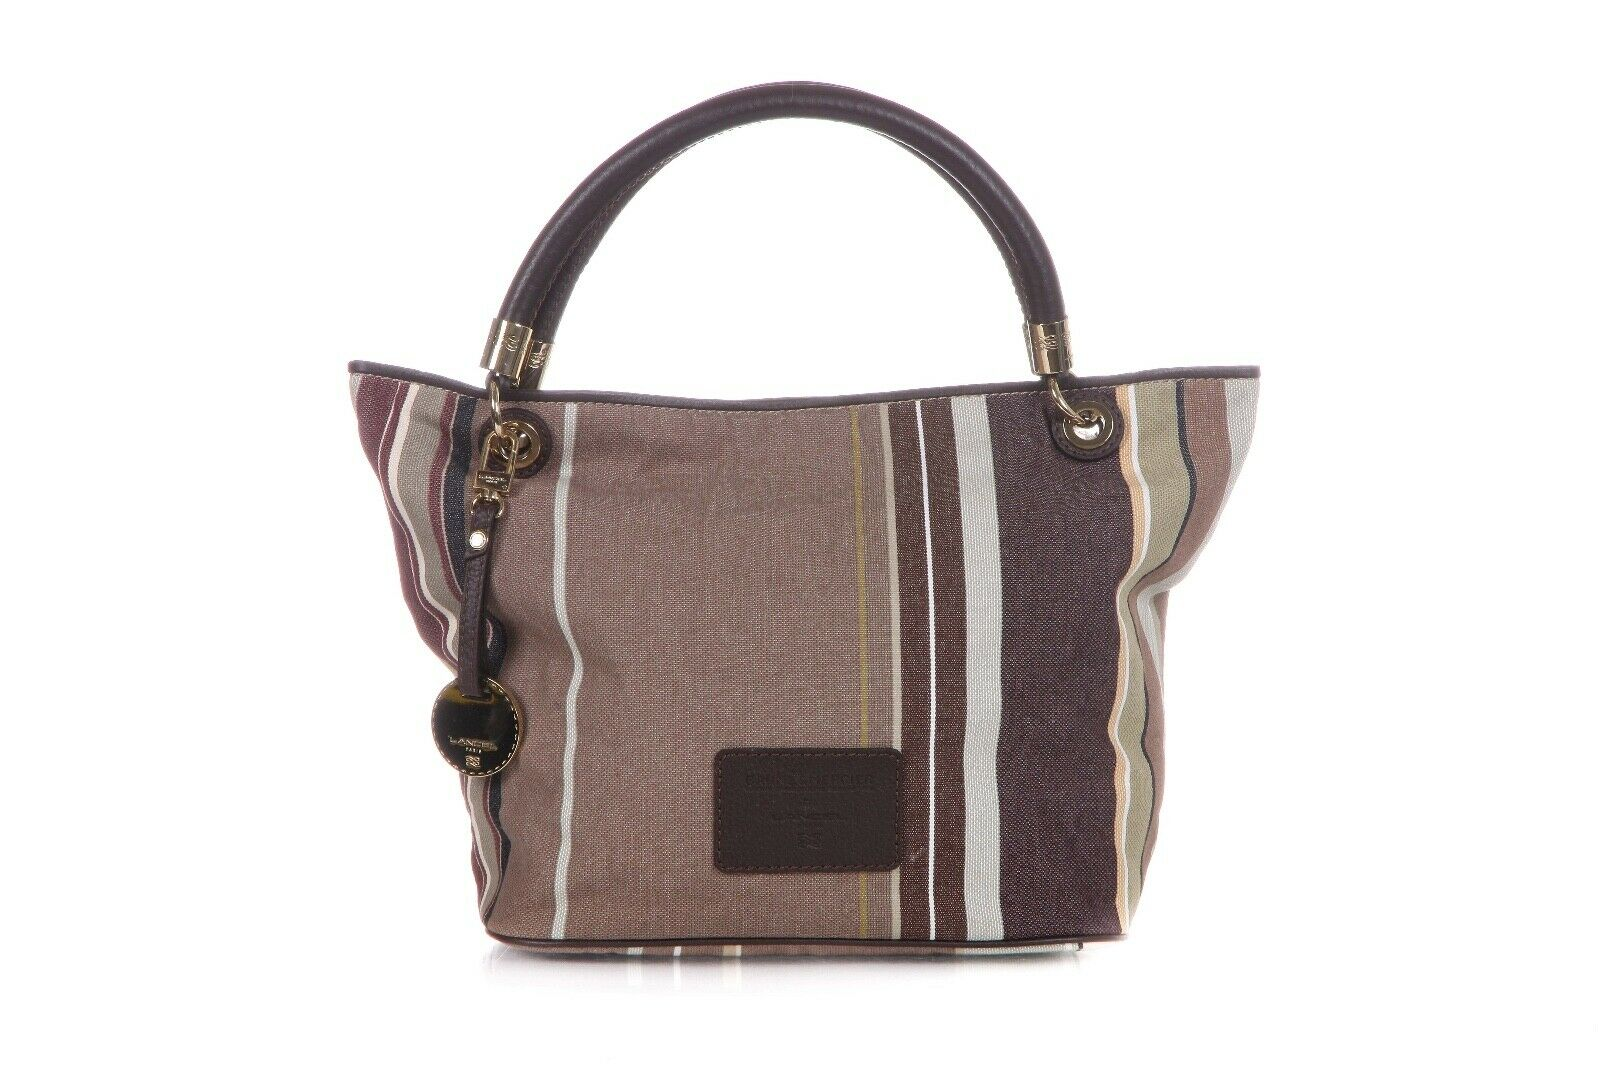 BAUME & MERCIER By LANCEL Shoulder Tote Bag